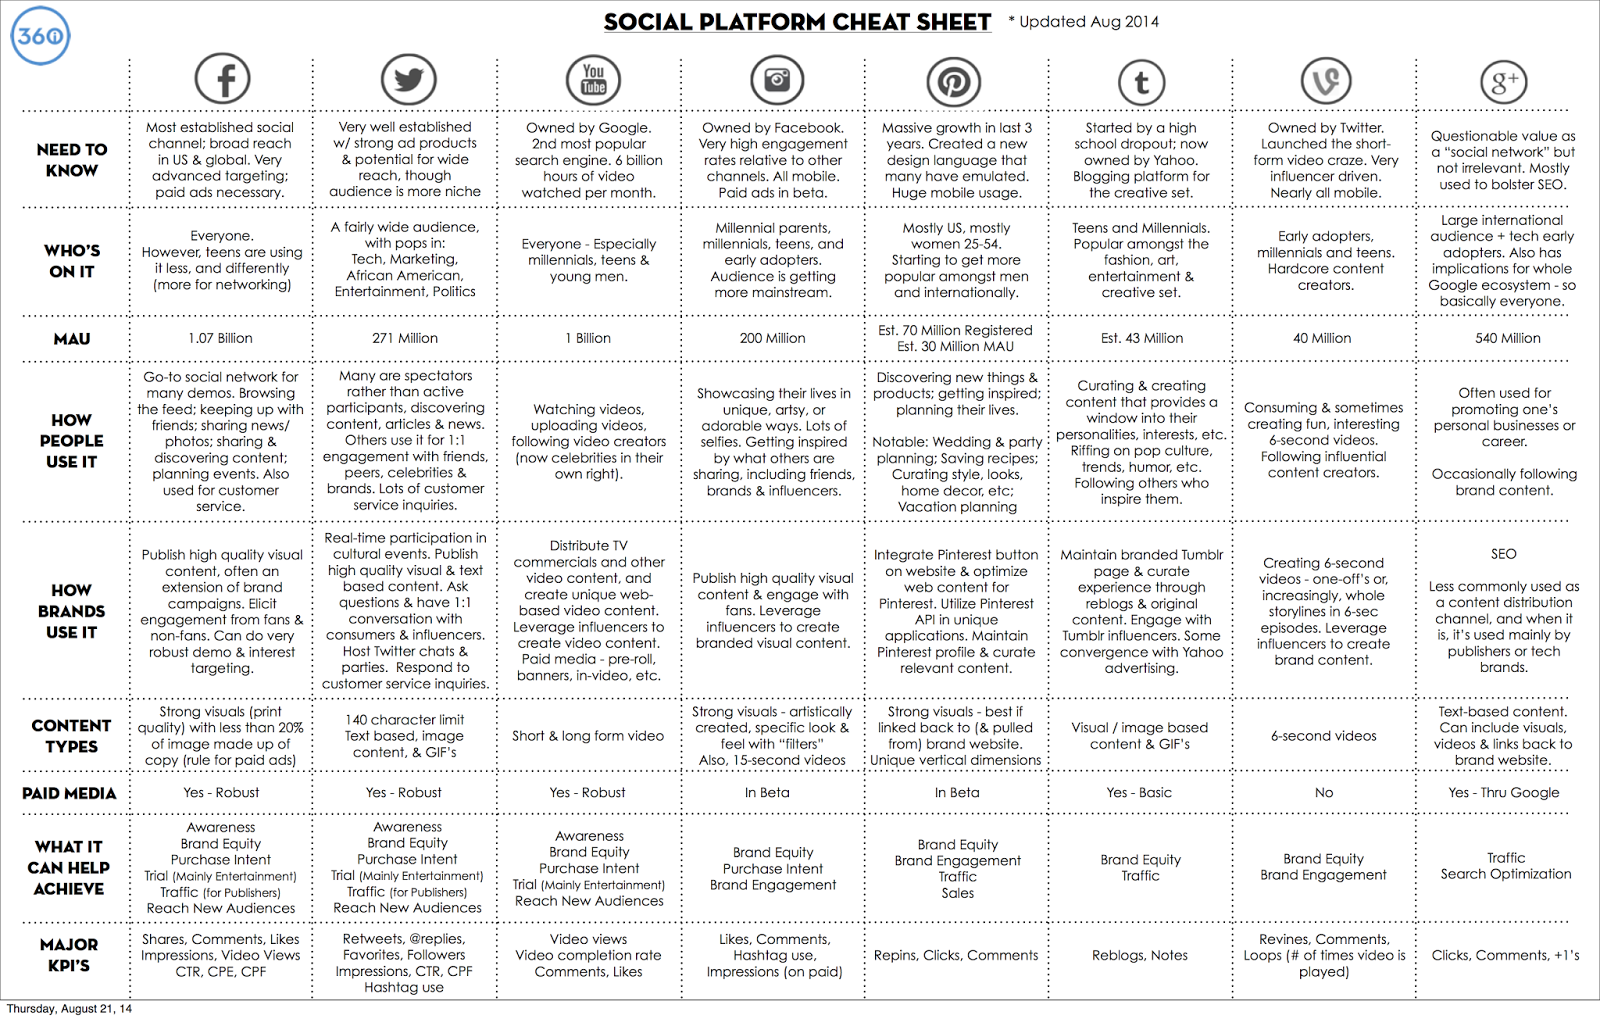 Social Media Cheat Sheet: A Marketer's Guide to 8 Top Platforms